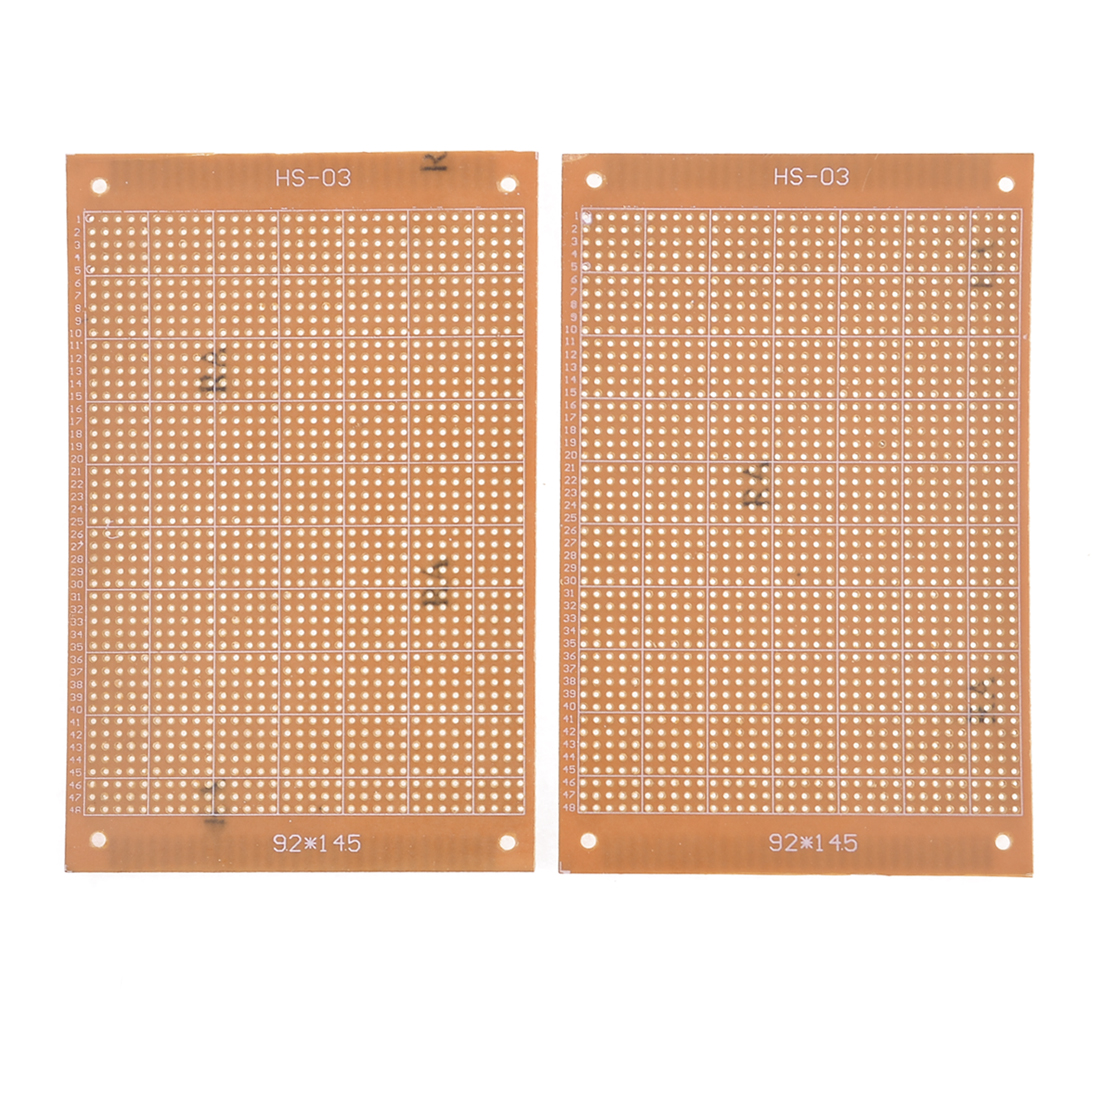 2Pcs Single Side Copper Panel Prototype Matrix Circuit PCB Board 14.5x9.2cm